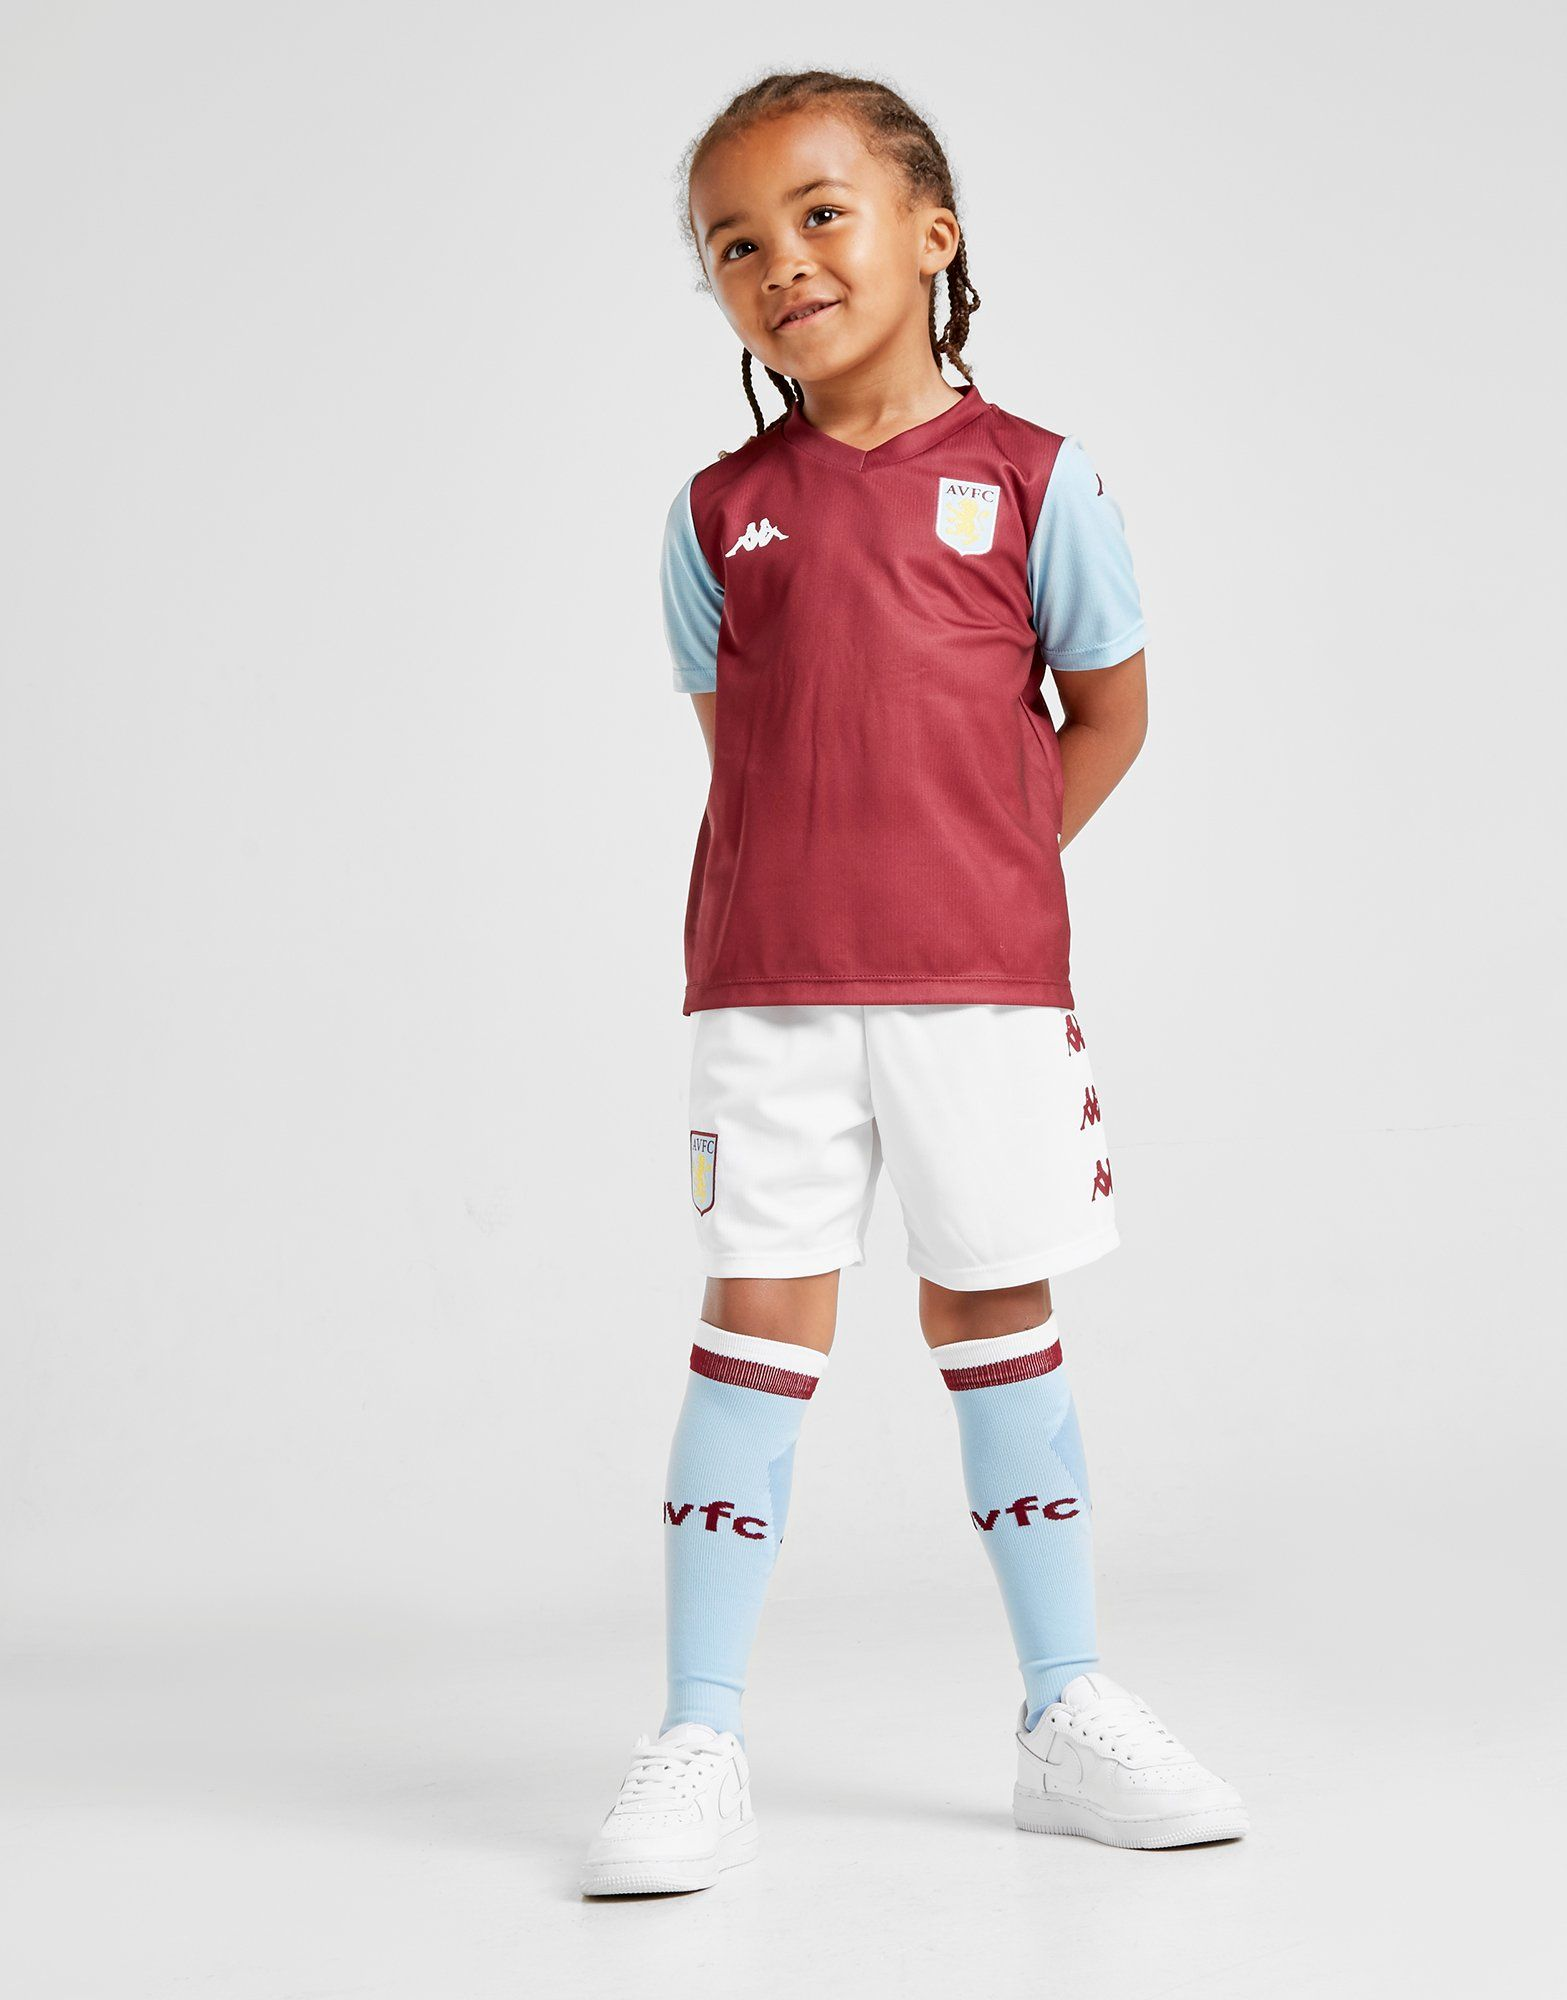 e6dff5b2 Kappa Aston Villa FC 2019/20 Home Kit Children | JD Sports Ireland